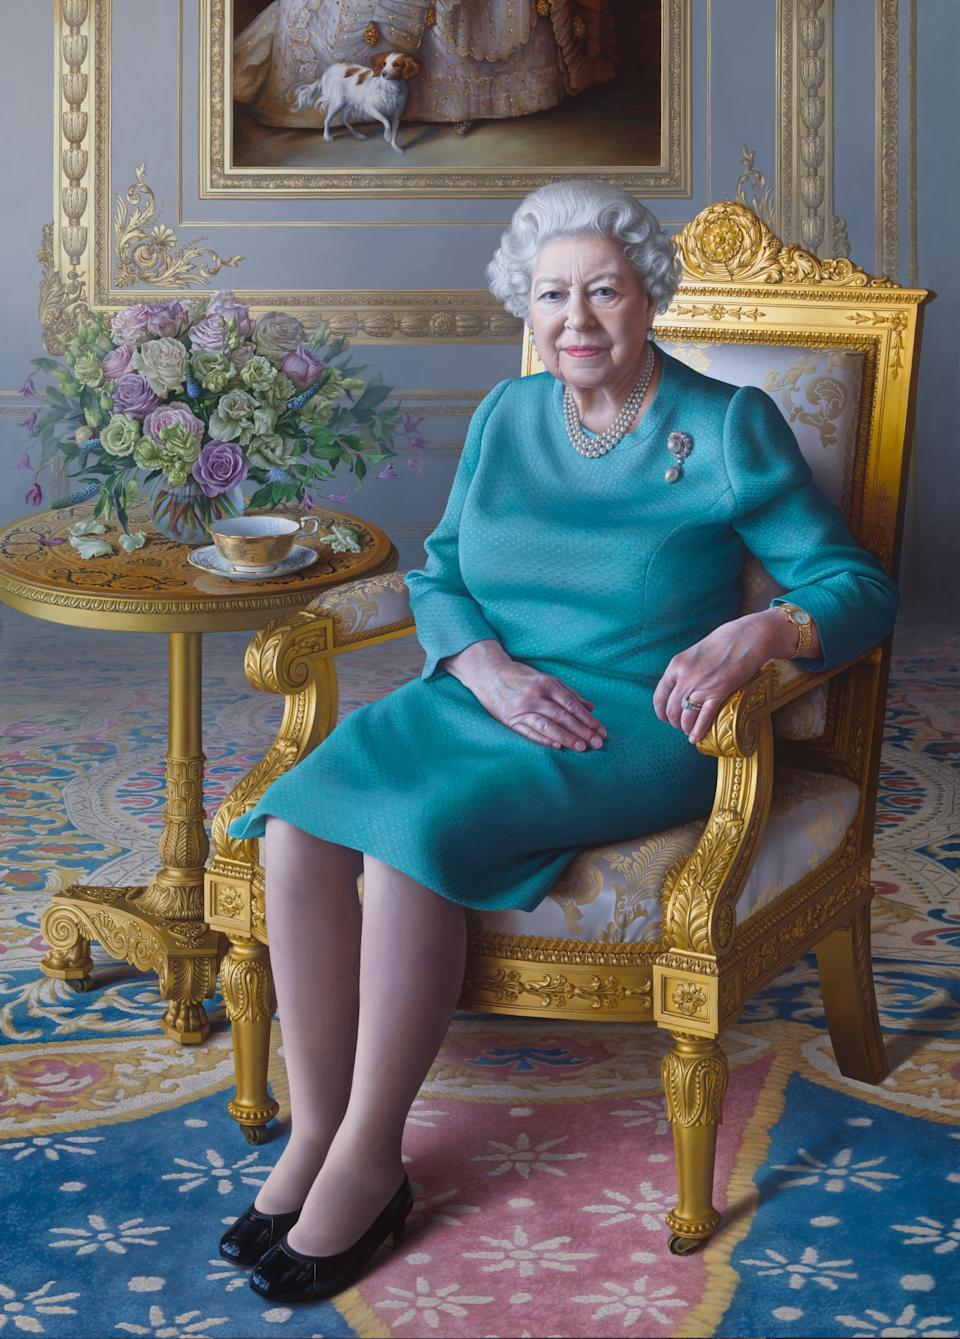 Royal portrait of Queen Elizabeth II commissioned by Foreign Office, painted by Miriam Escofet includes empty teacup